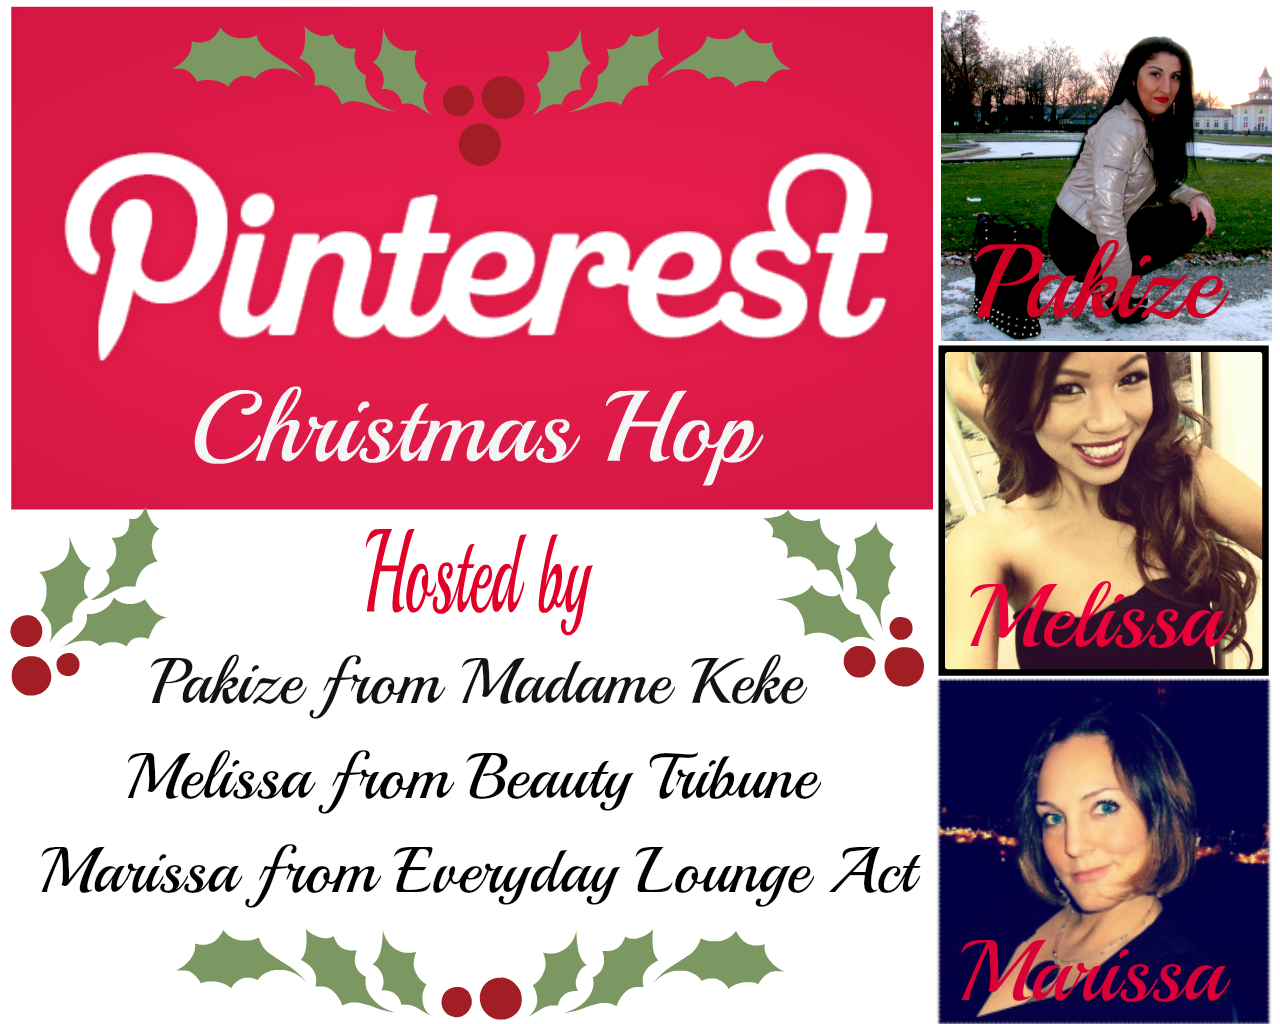 Pinterest Christmas Hop by Madame Keke Fashion & Beauty Blog. Co-hosted by Beauty Tribune and Everyday Lounge Act